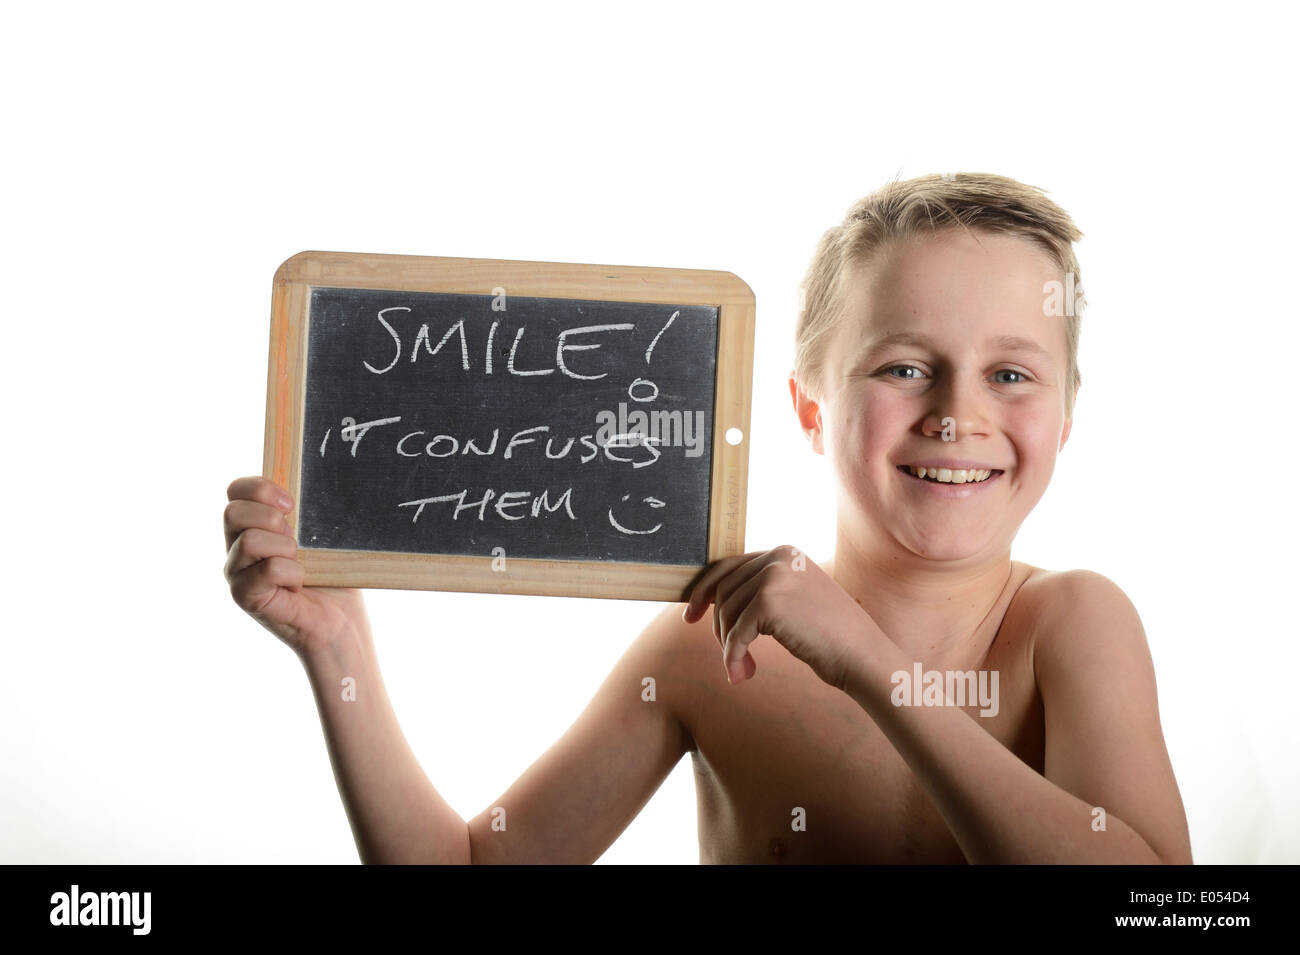 Stock photo of a yong teenager holding a chalk baord messaying saying smile it confuses them - Stock Image